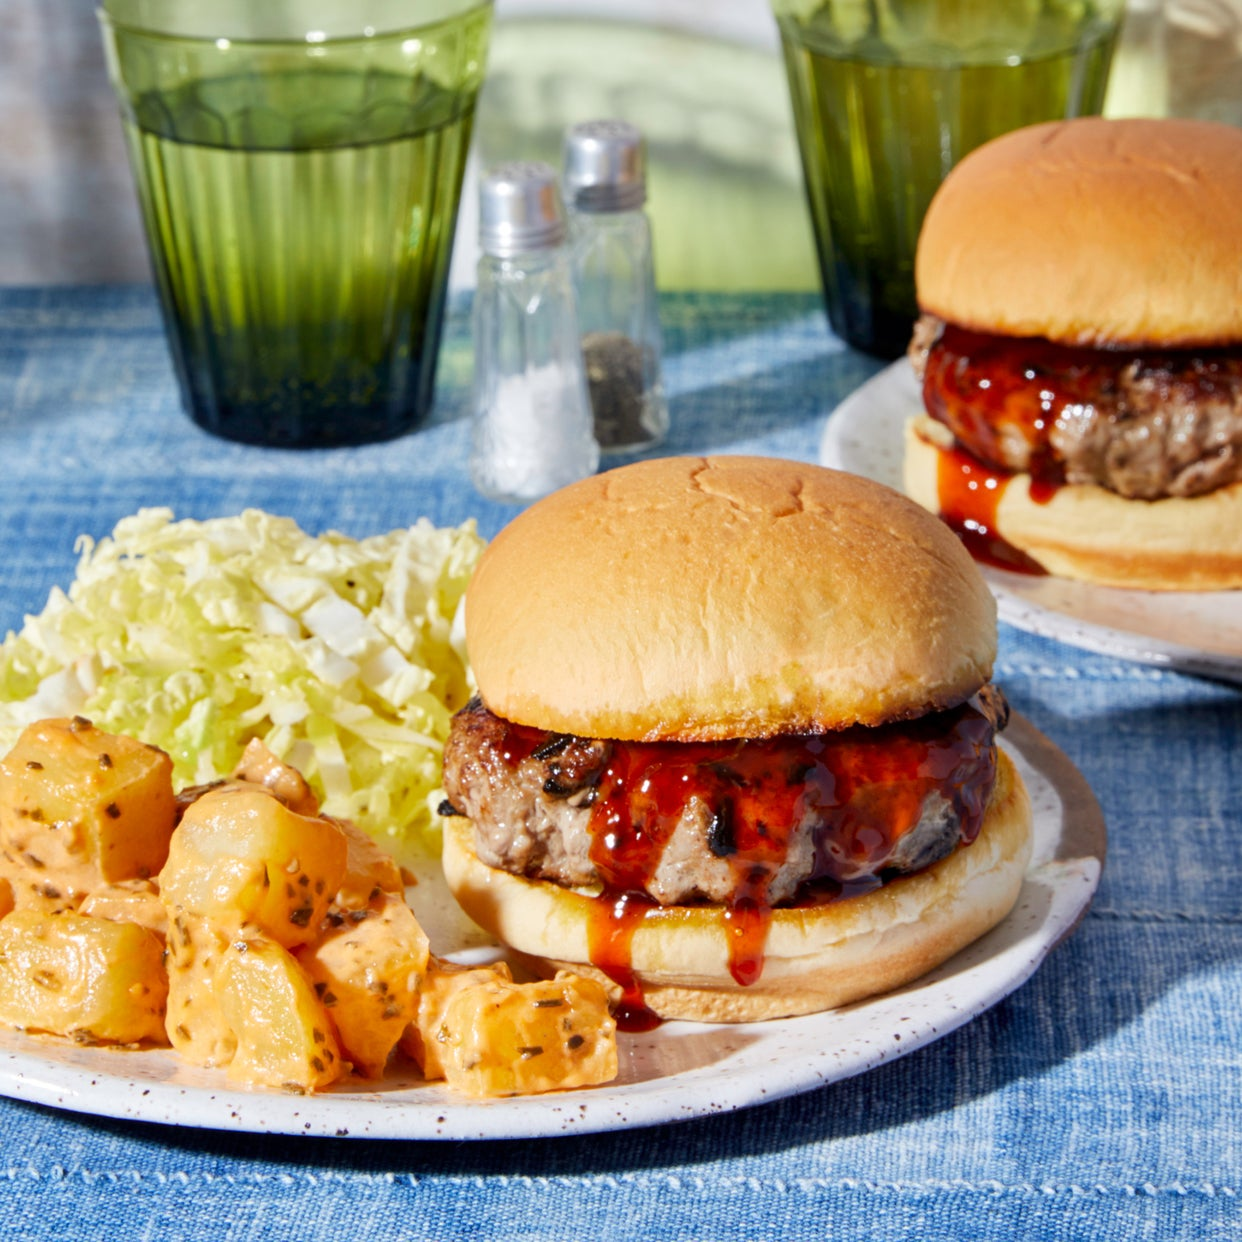 Blackened Ginger Pork Burgers with Napa Cabbage Slaw & Potato Salad